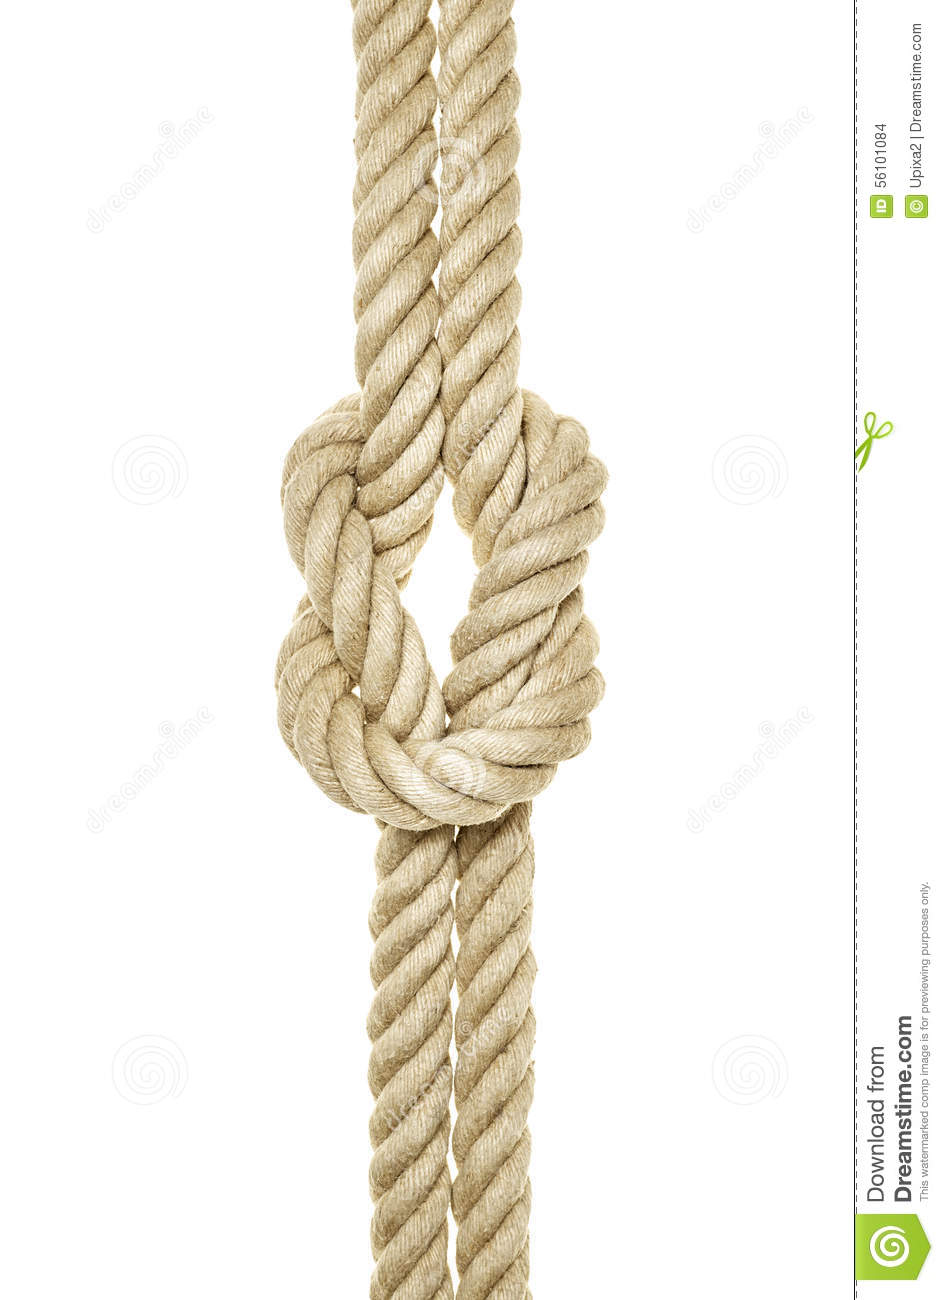 Knitting Knots Rolde : Rope knot reef stock photo image of knitting